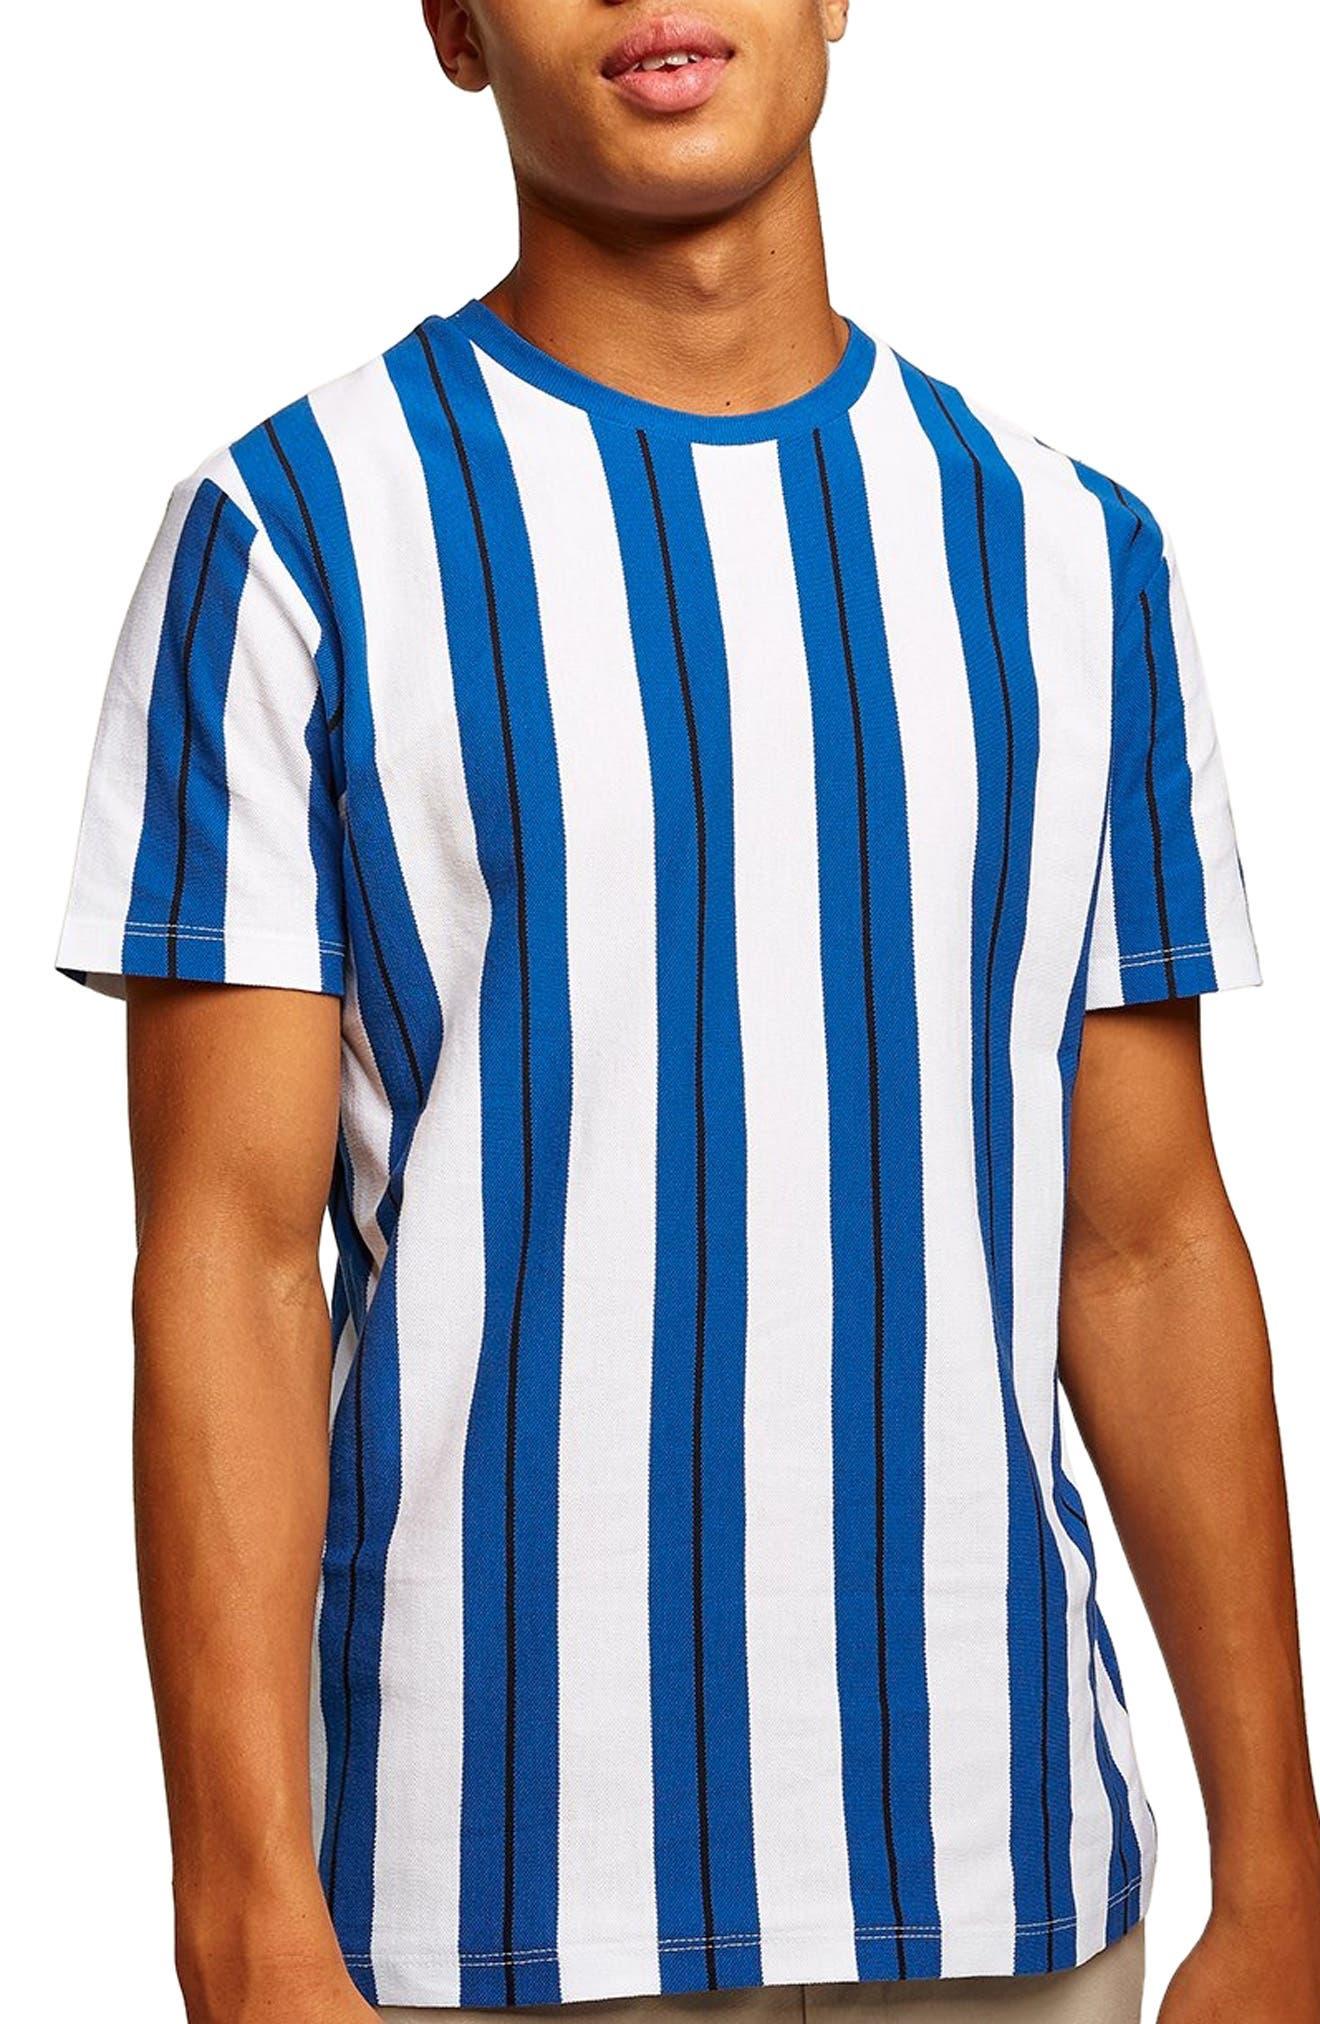 Stripe Piqué T-Shirt,                             Main thumbnail 1, color,                             BLUE